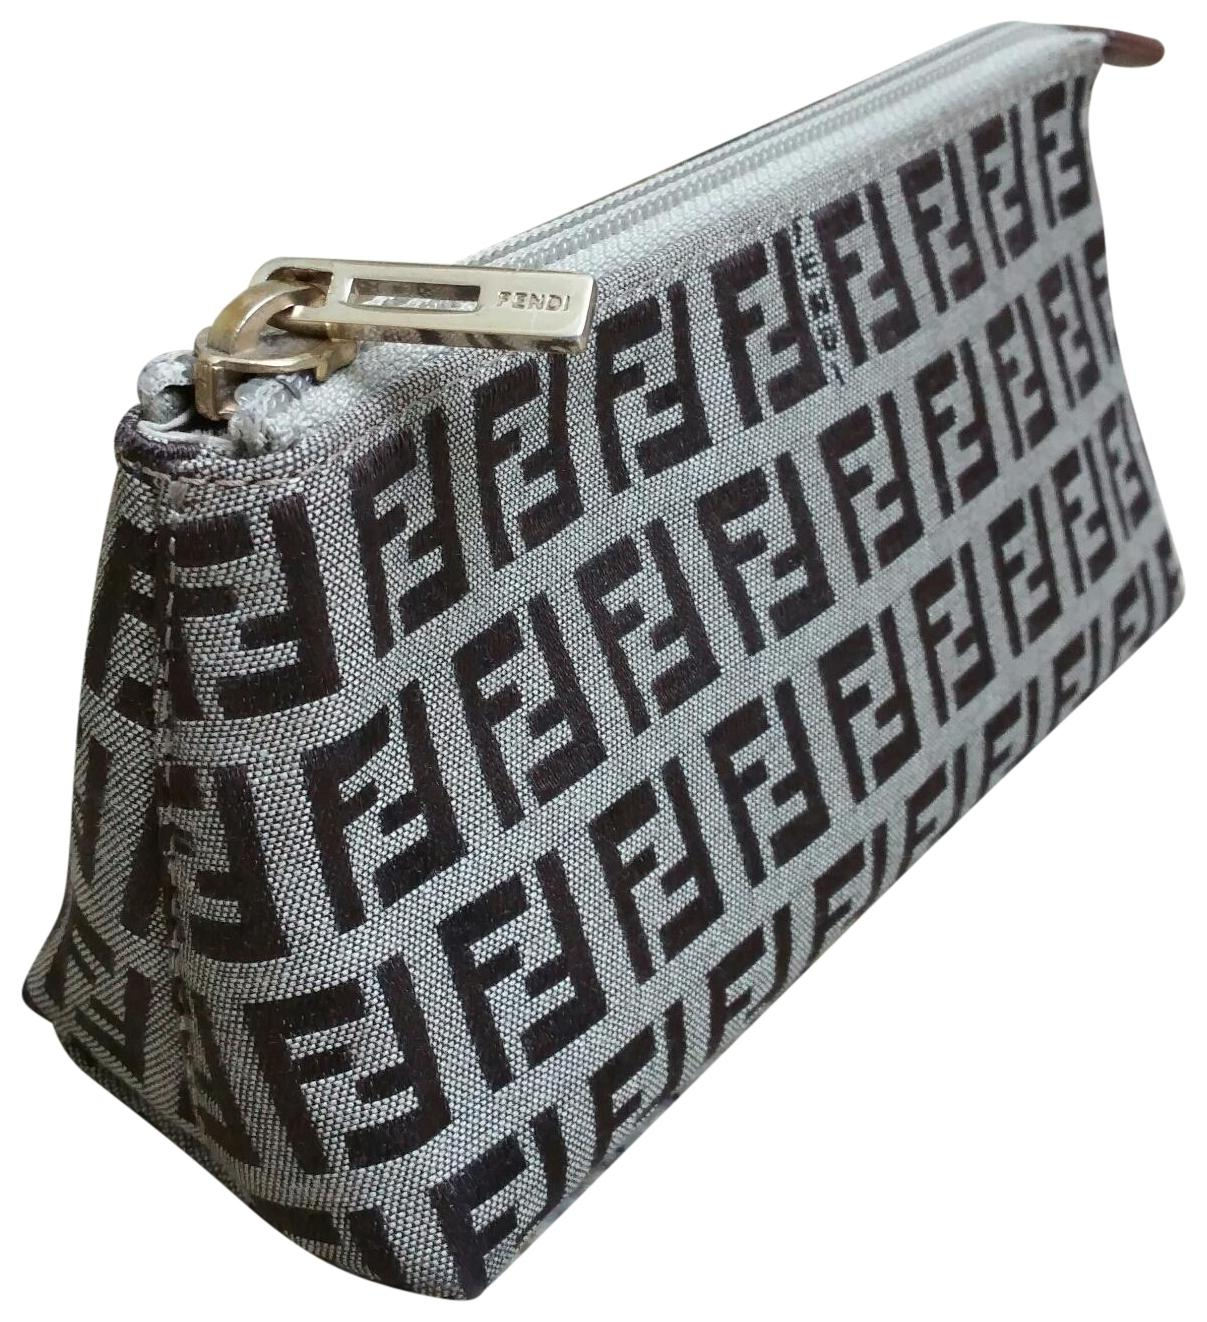 ... get fendi cosmetic bags up to 70 off at tradesy 60252 b6ff5 ... c8daf1ec48775